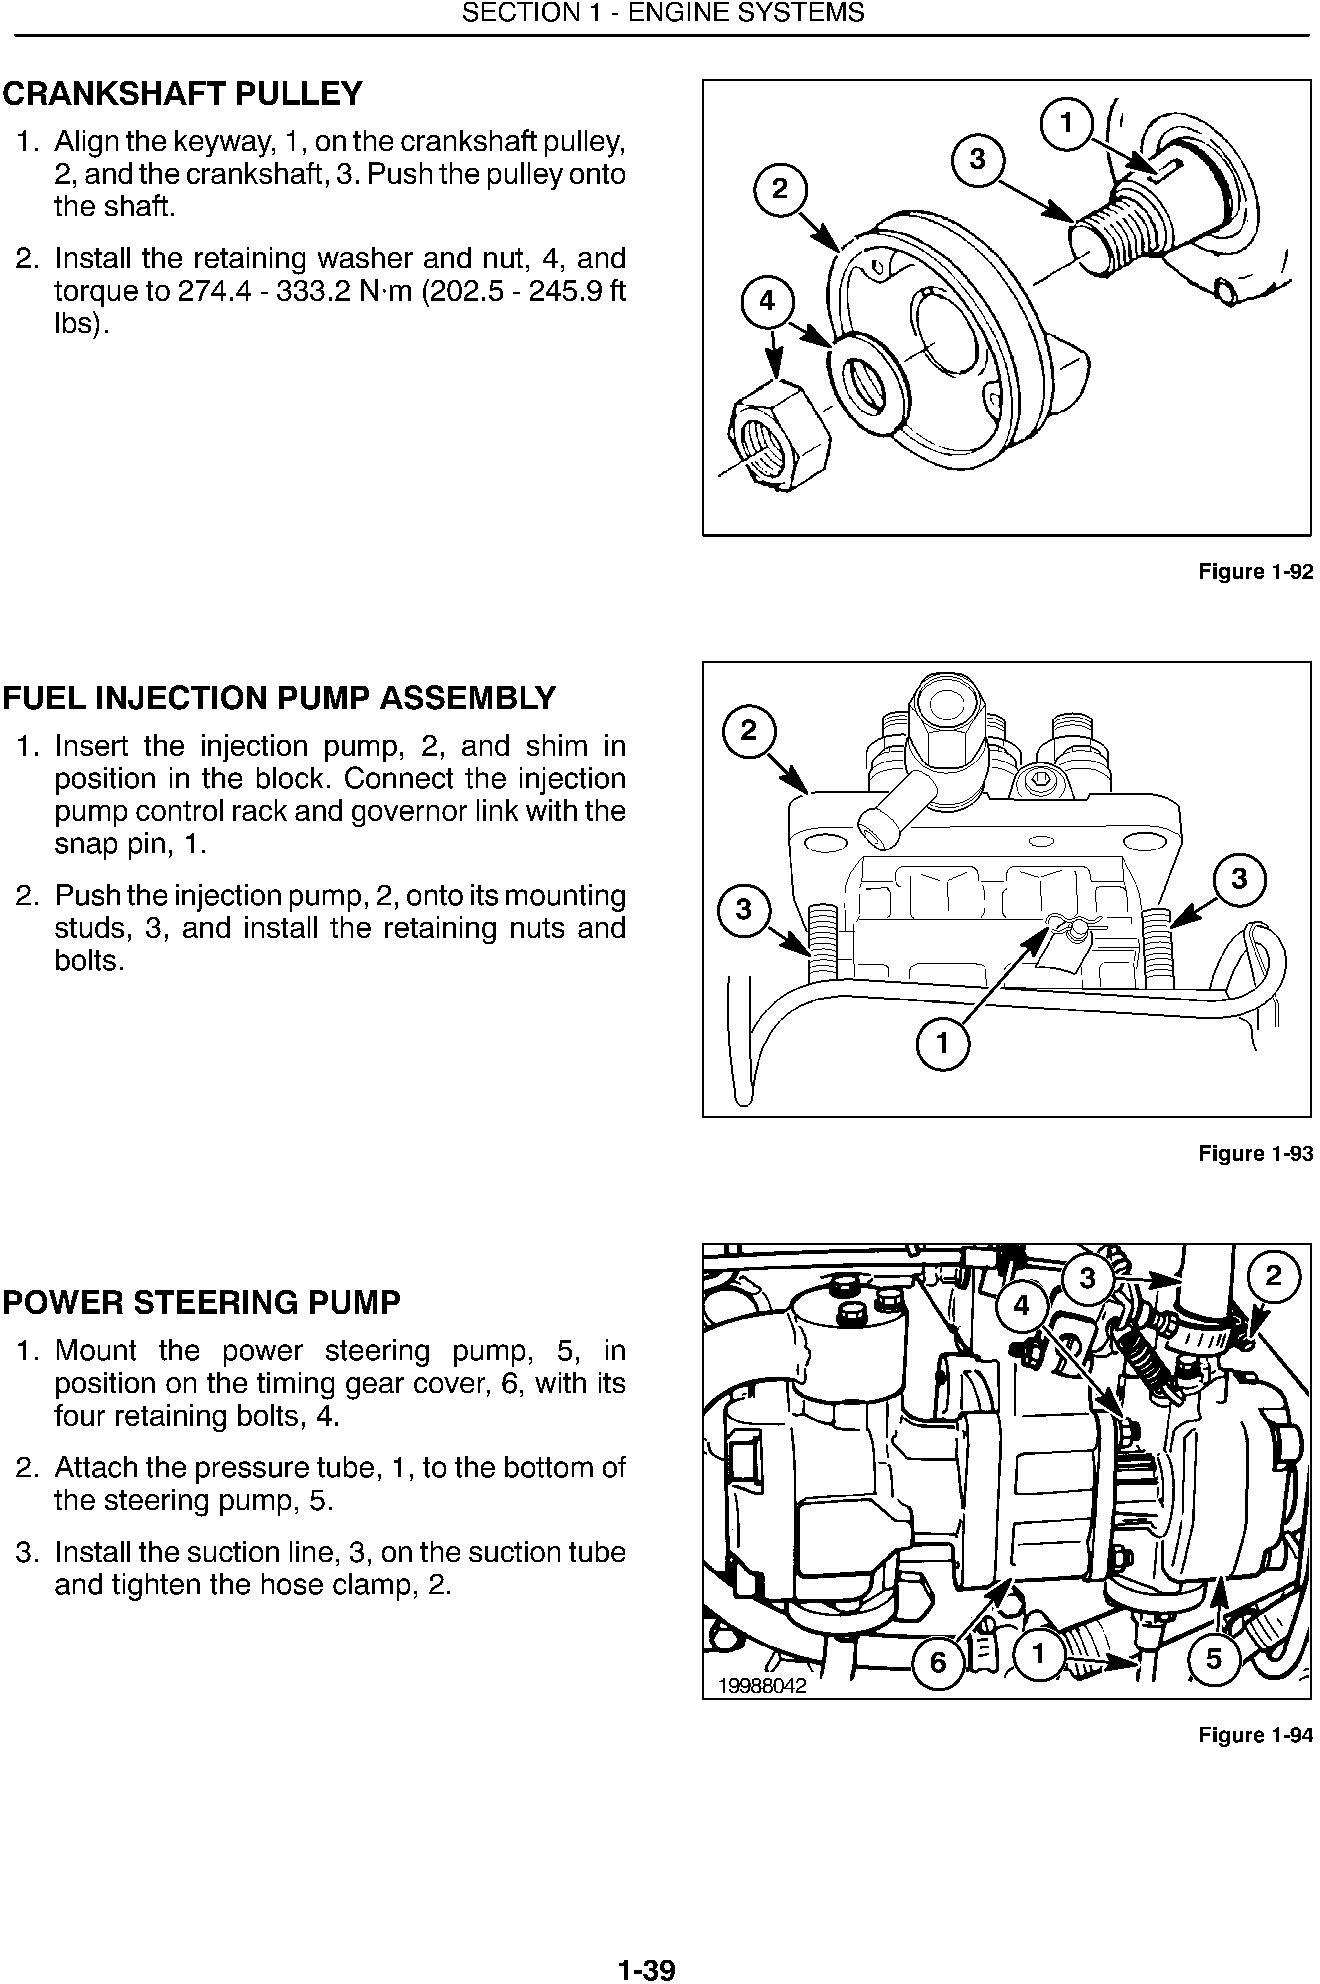 New Holland 1530, 1630, 1725, 1925, TC25, TC25D, TC29, TC29D, TC33, TC33D Tractors Service Manual - 2